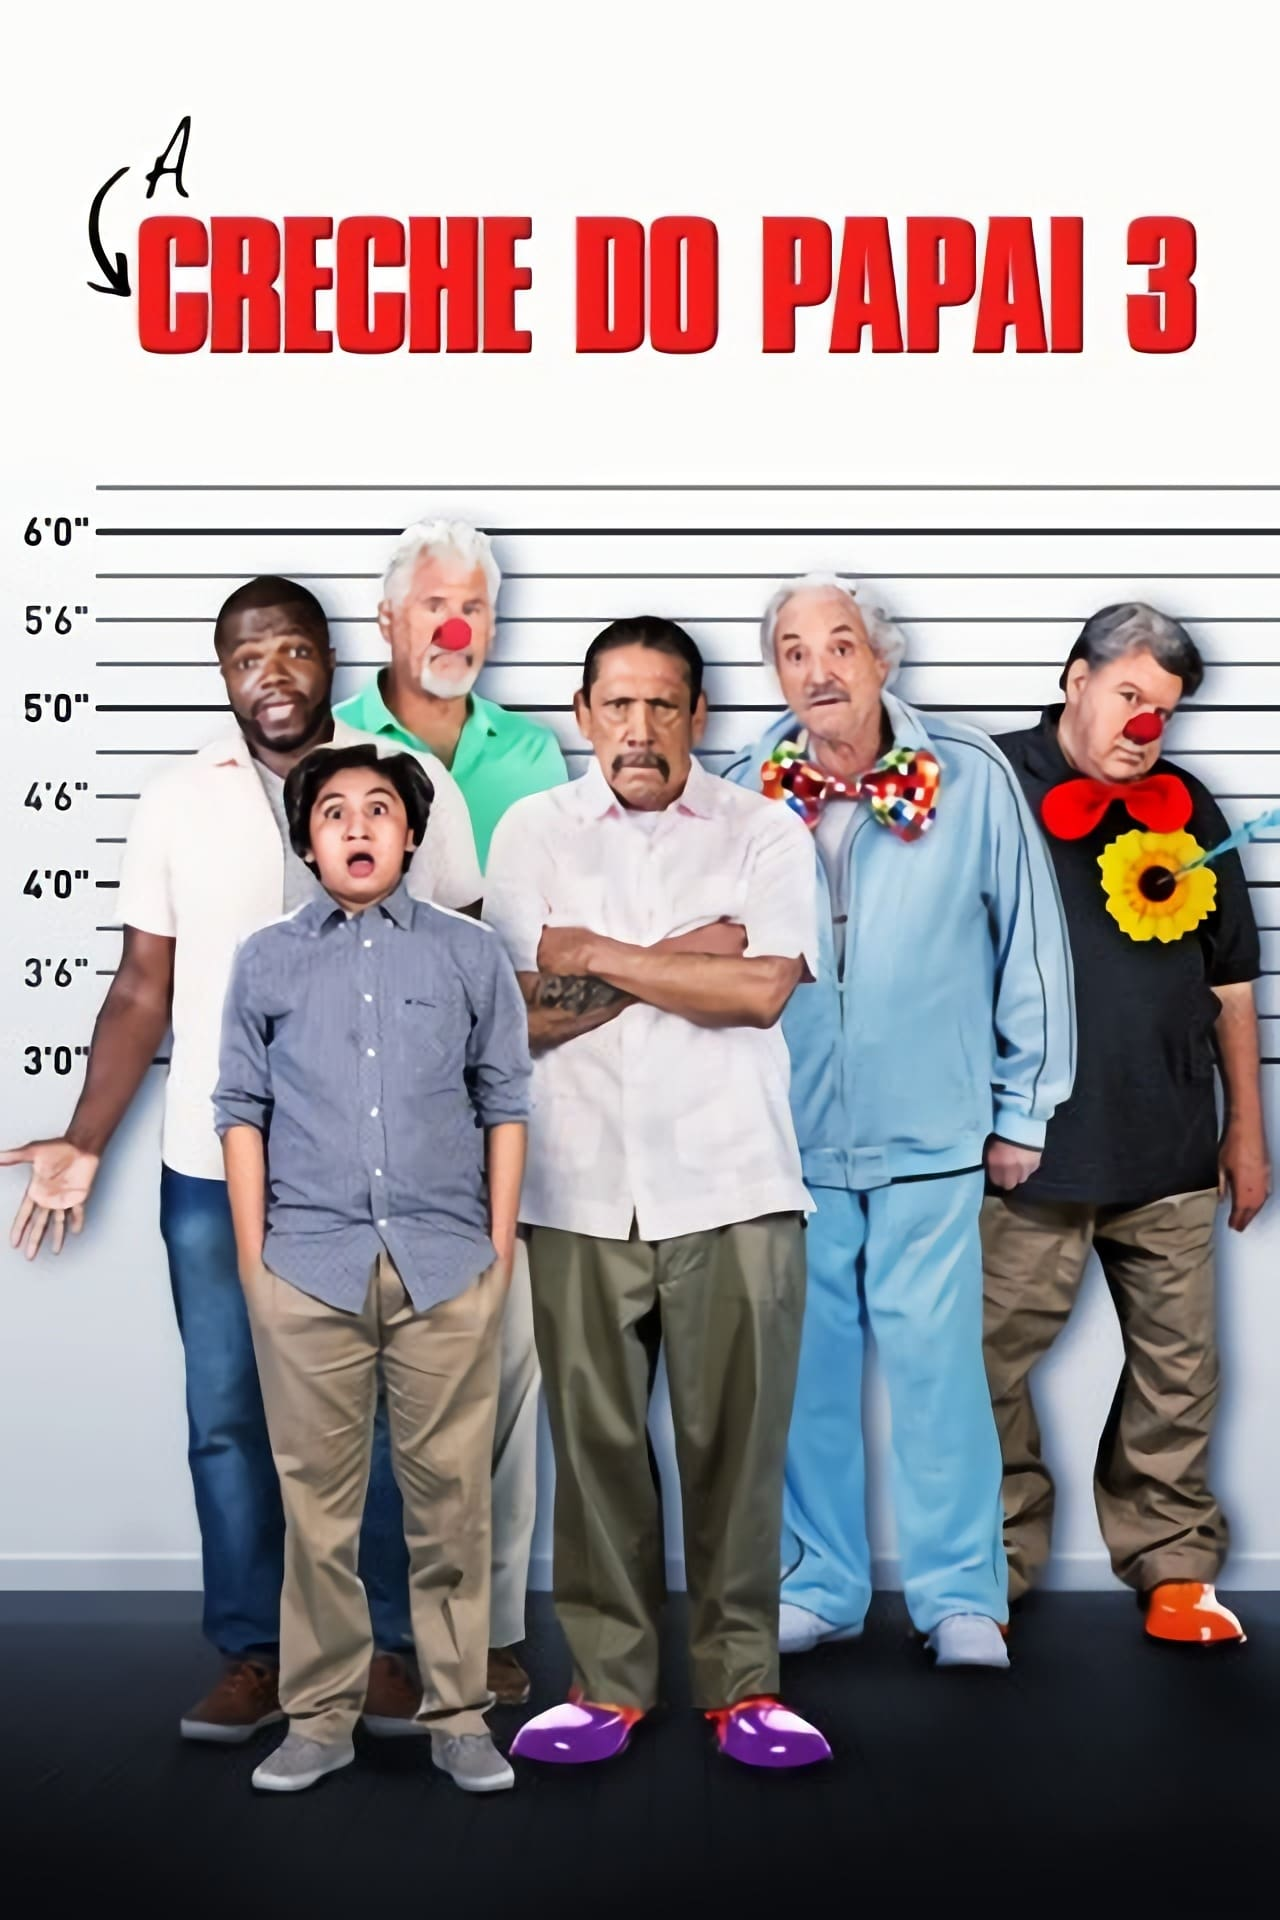 assistir filme a creche do papai 3